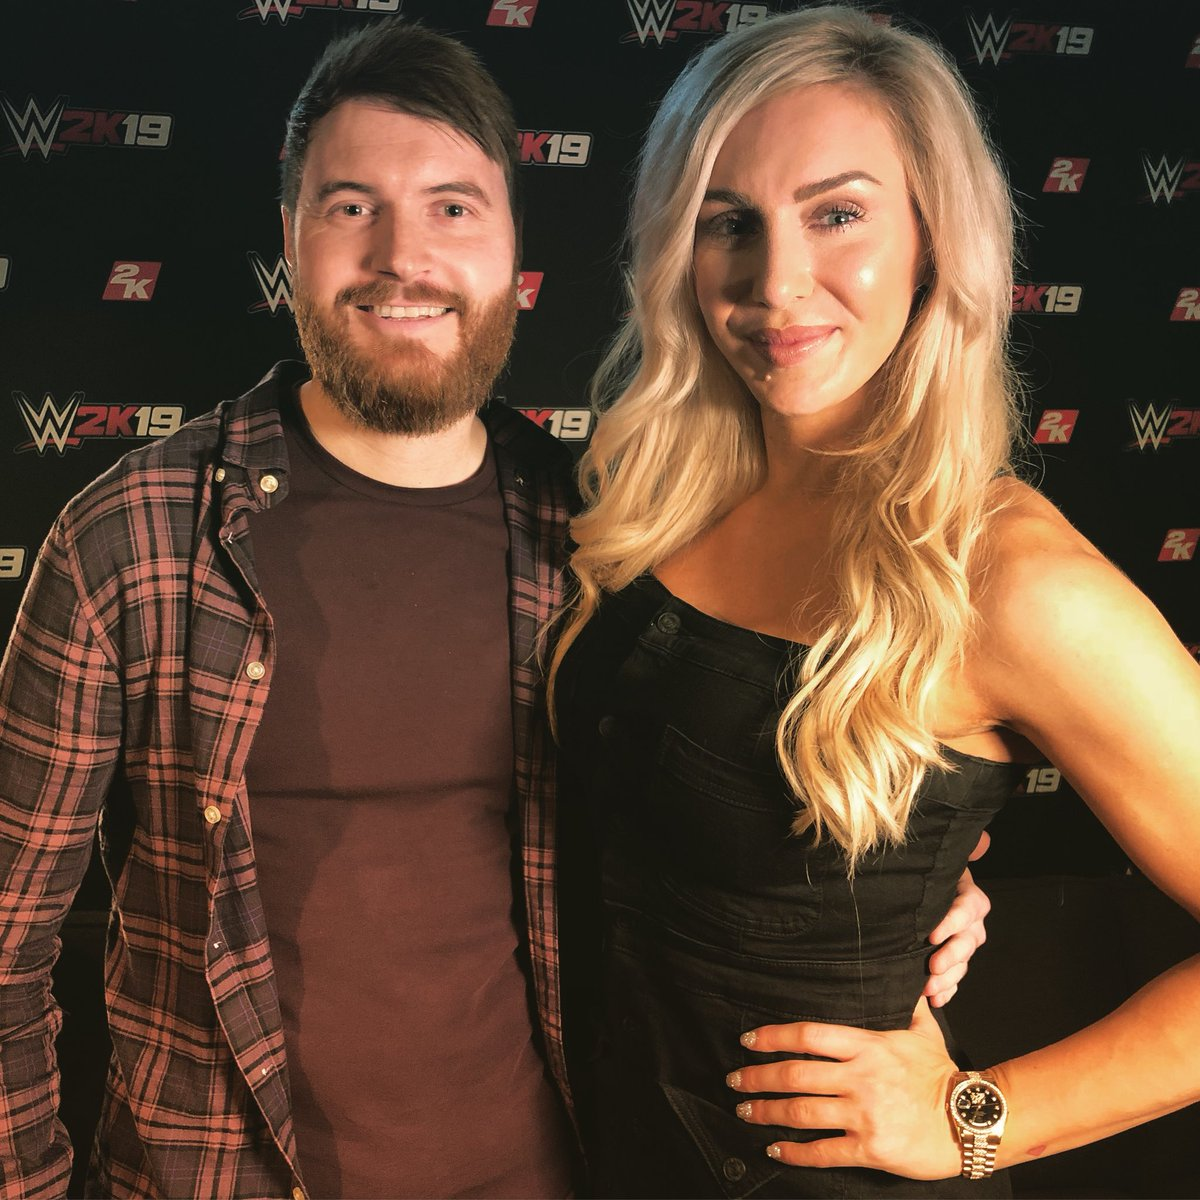 Great to meet &amp; interview  @MsCharlotteWWE at the #WWE2K19 event, we even defined the Ric Flair Drip!   Video coming soon to the channel! Thanks again Queen!  <br>http://pic.twitter.com/qxVe9HakaD